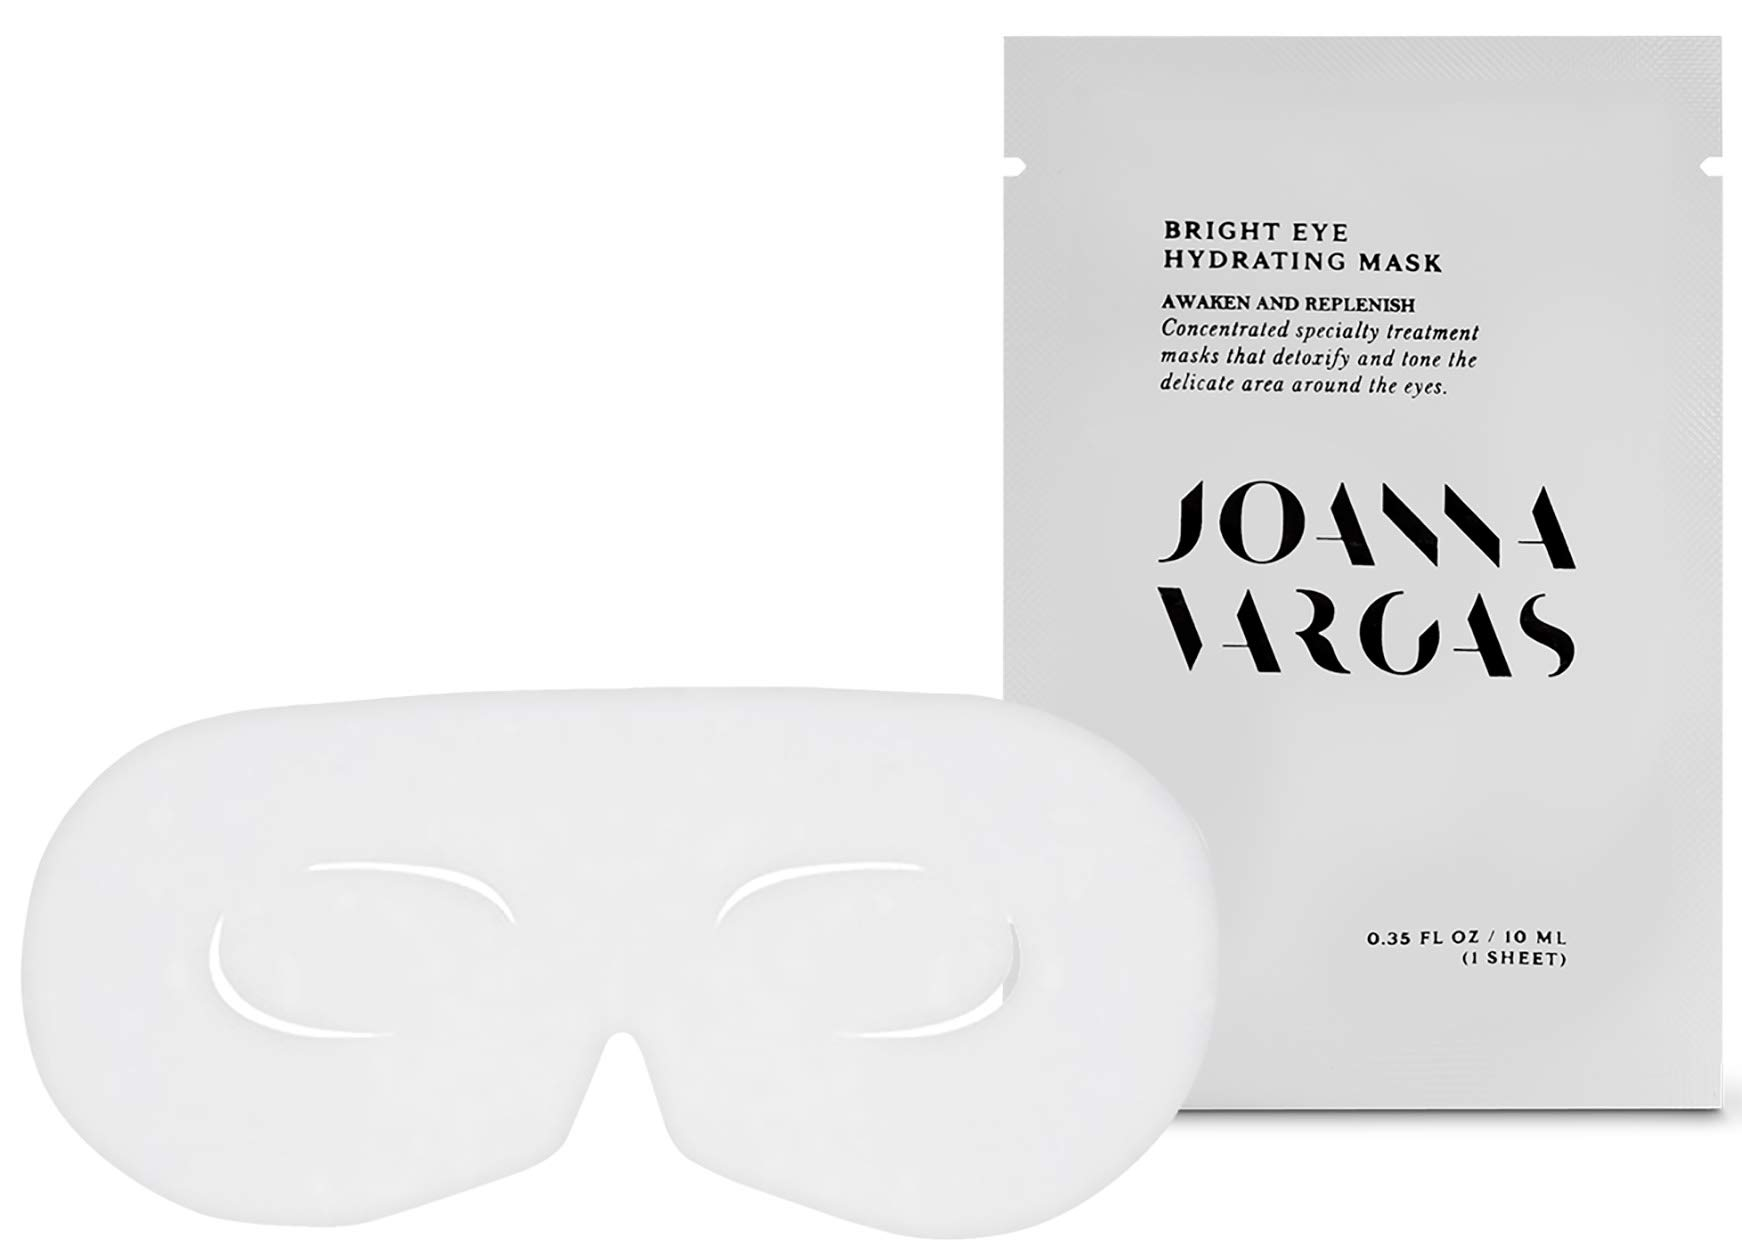 Bright Eye Hydrating Mask - Concentrated Specialty Eye Mask With Eyeliss to Reduce Puffy Eyes And For Bags Under Eyes by Joanna Vargas Skin Care